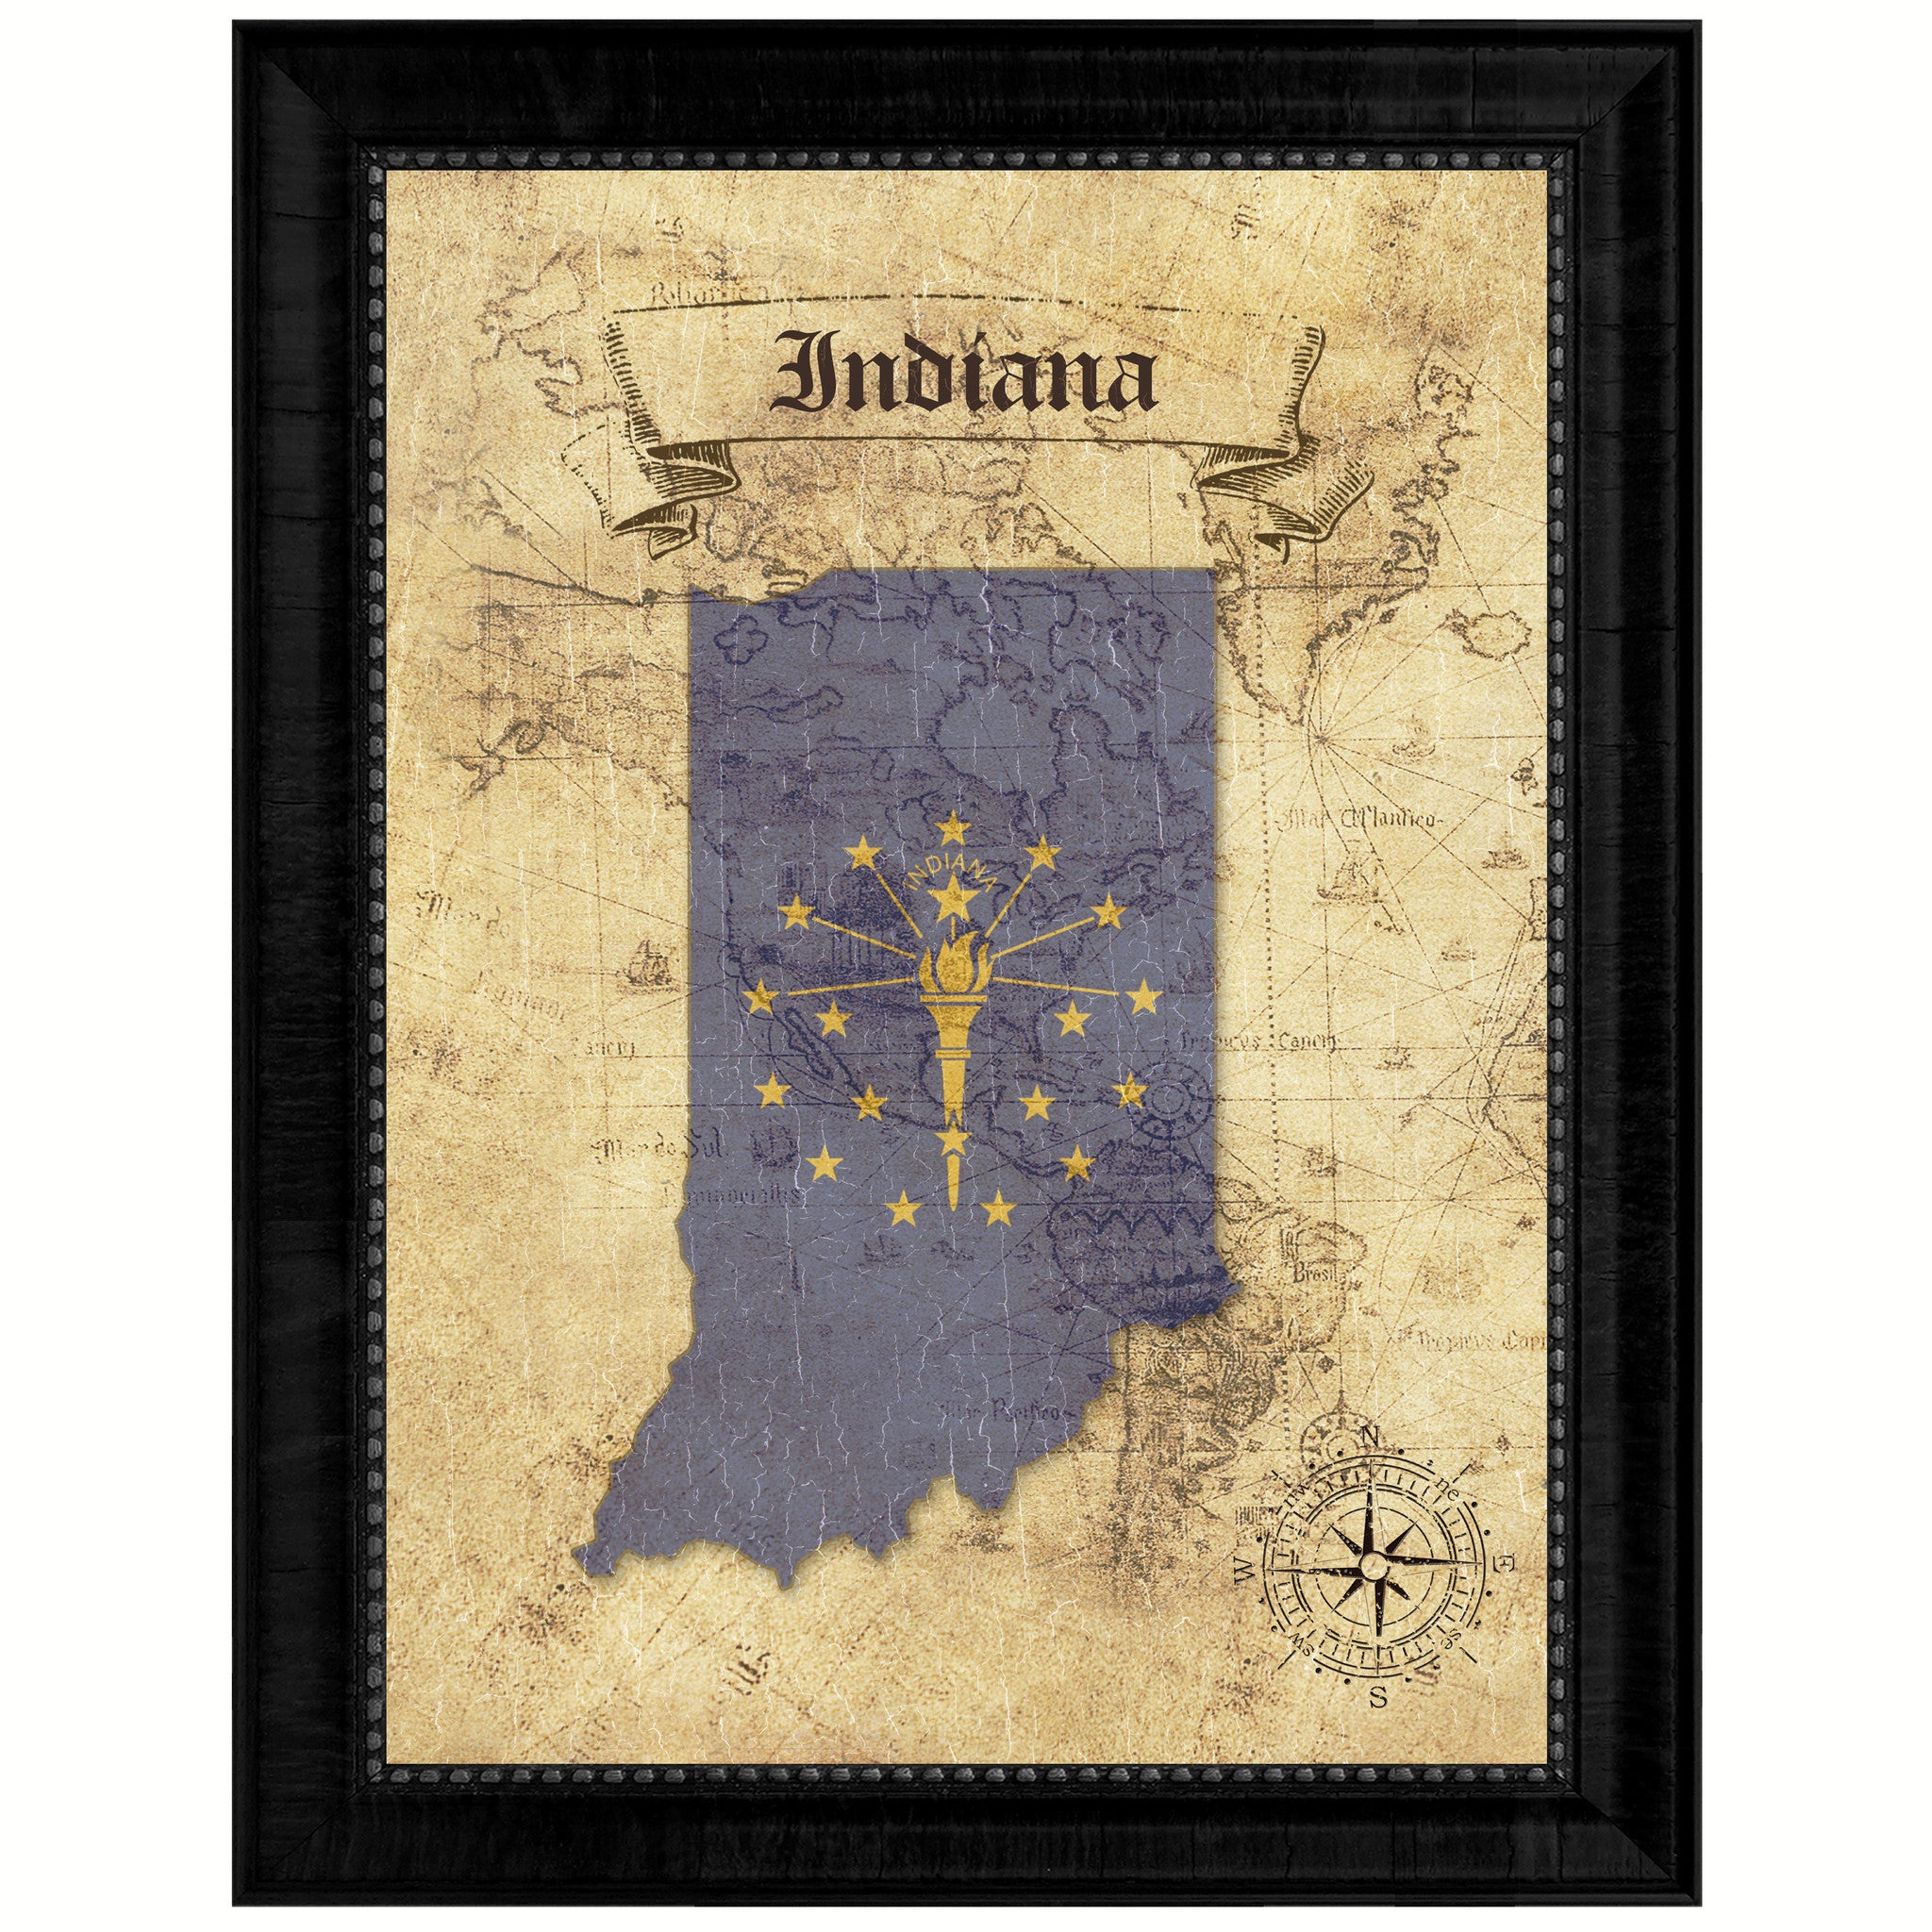 Indiana State Vintage Map Art Office Wall Home Decor Rustic Gift ...